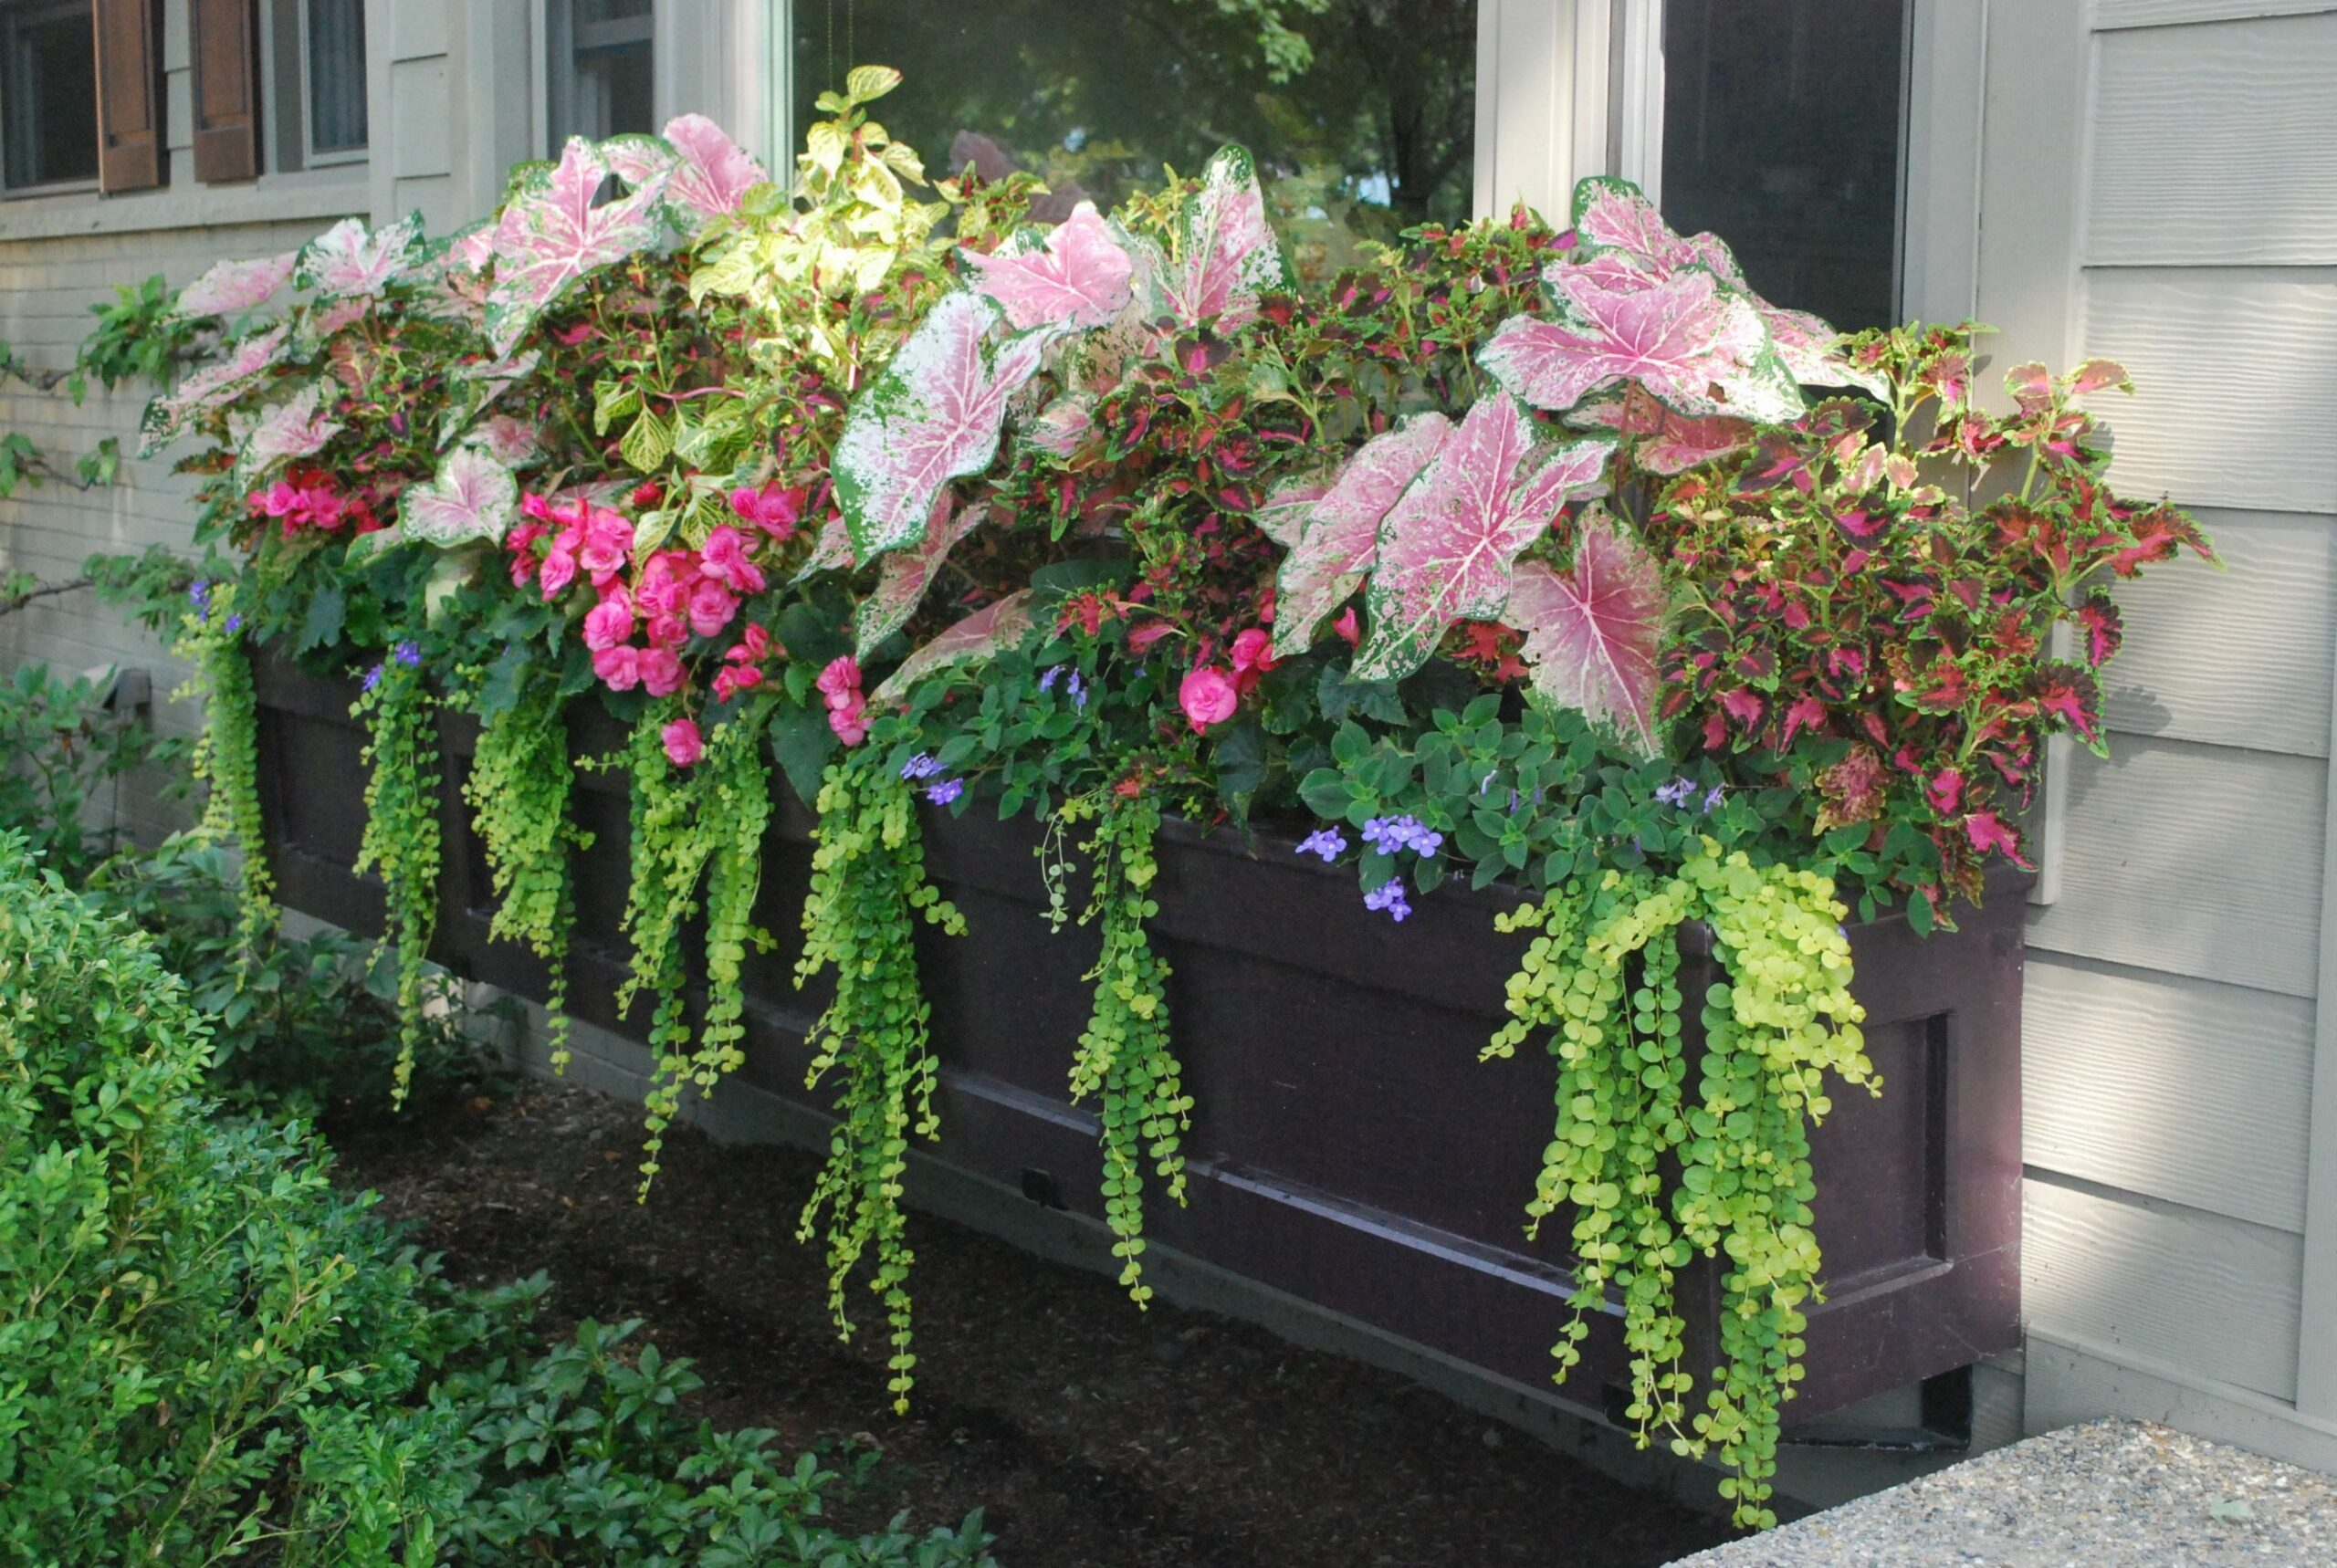 Designing Summer Containers (With images) | Window box plants ..